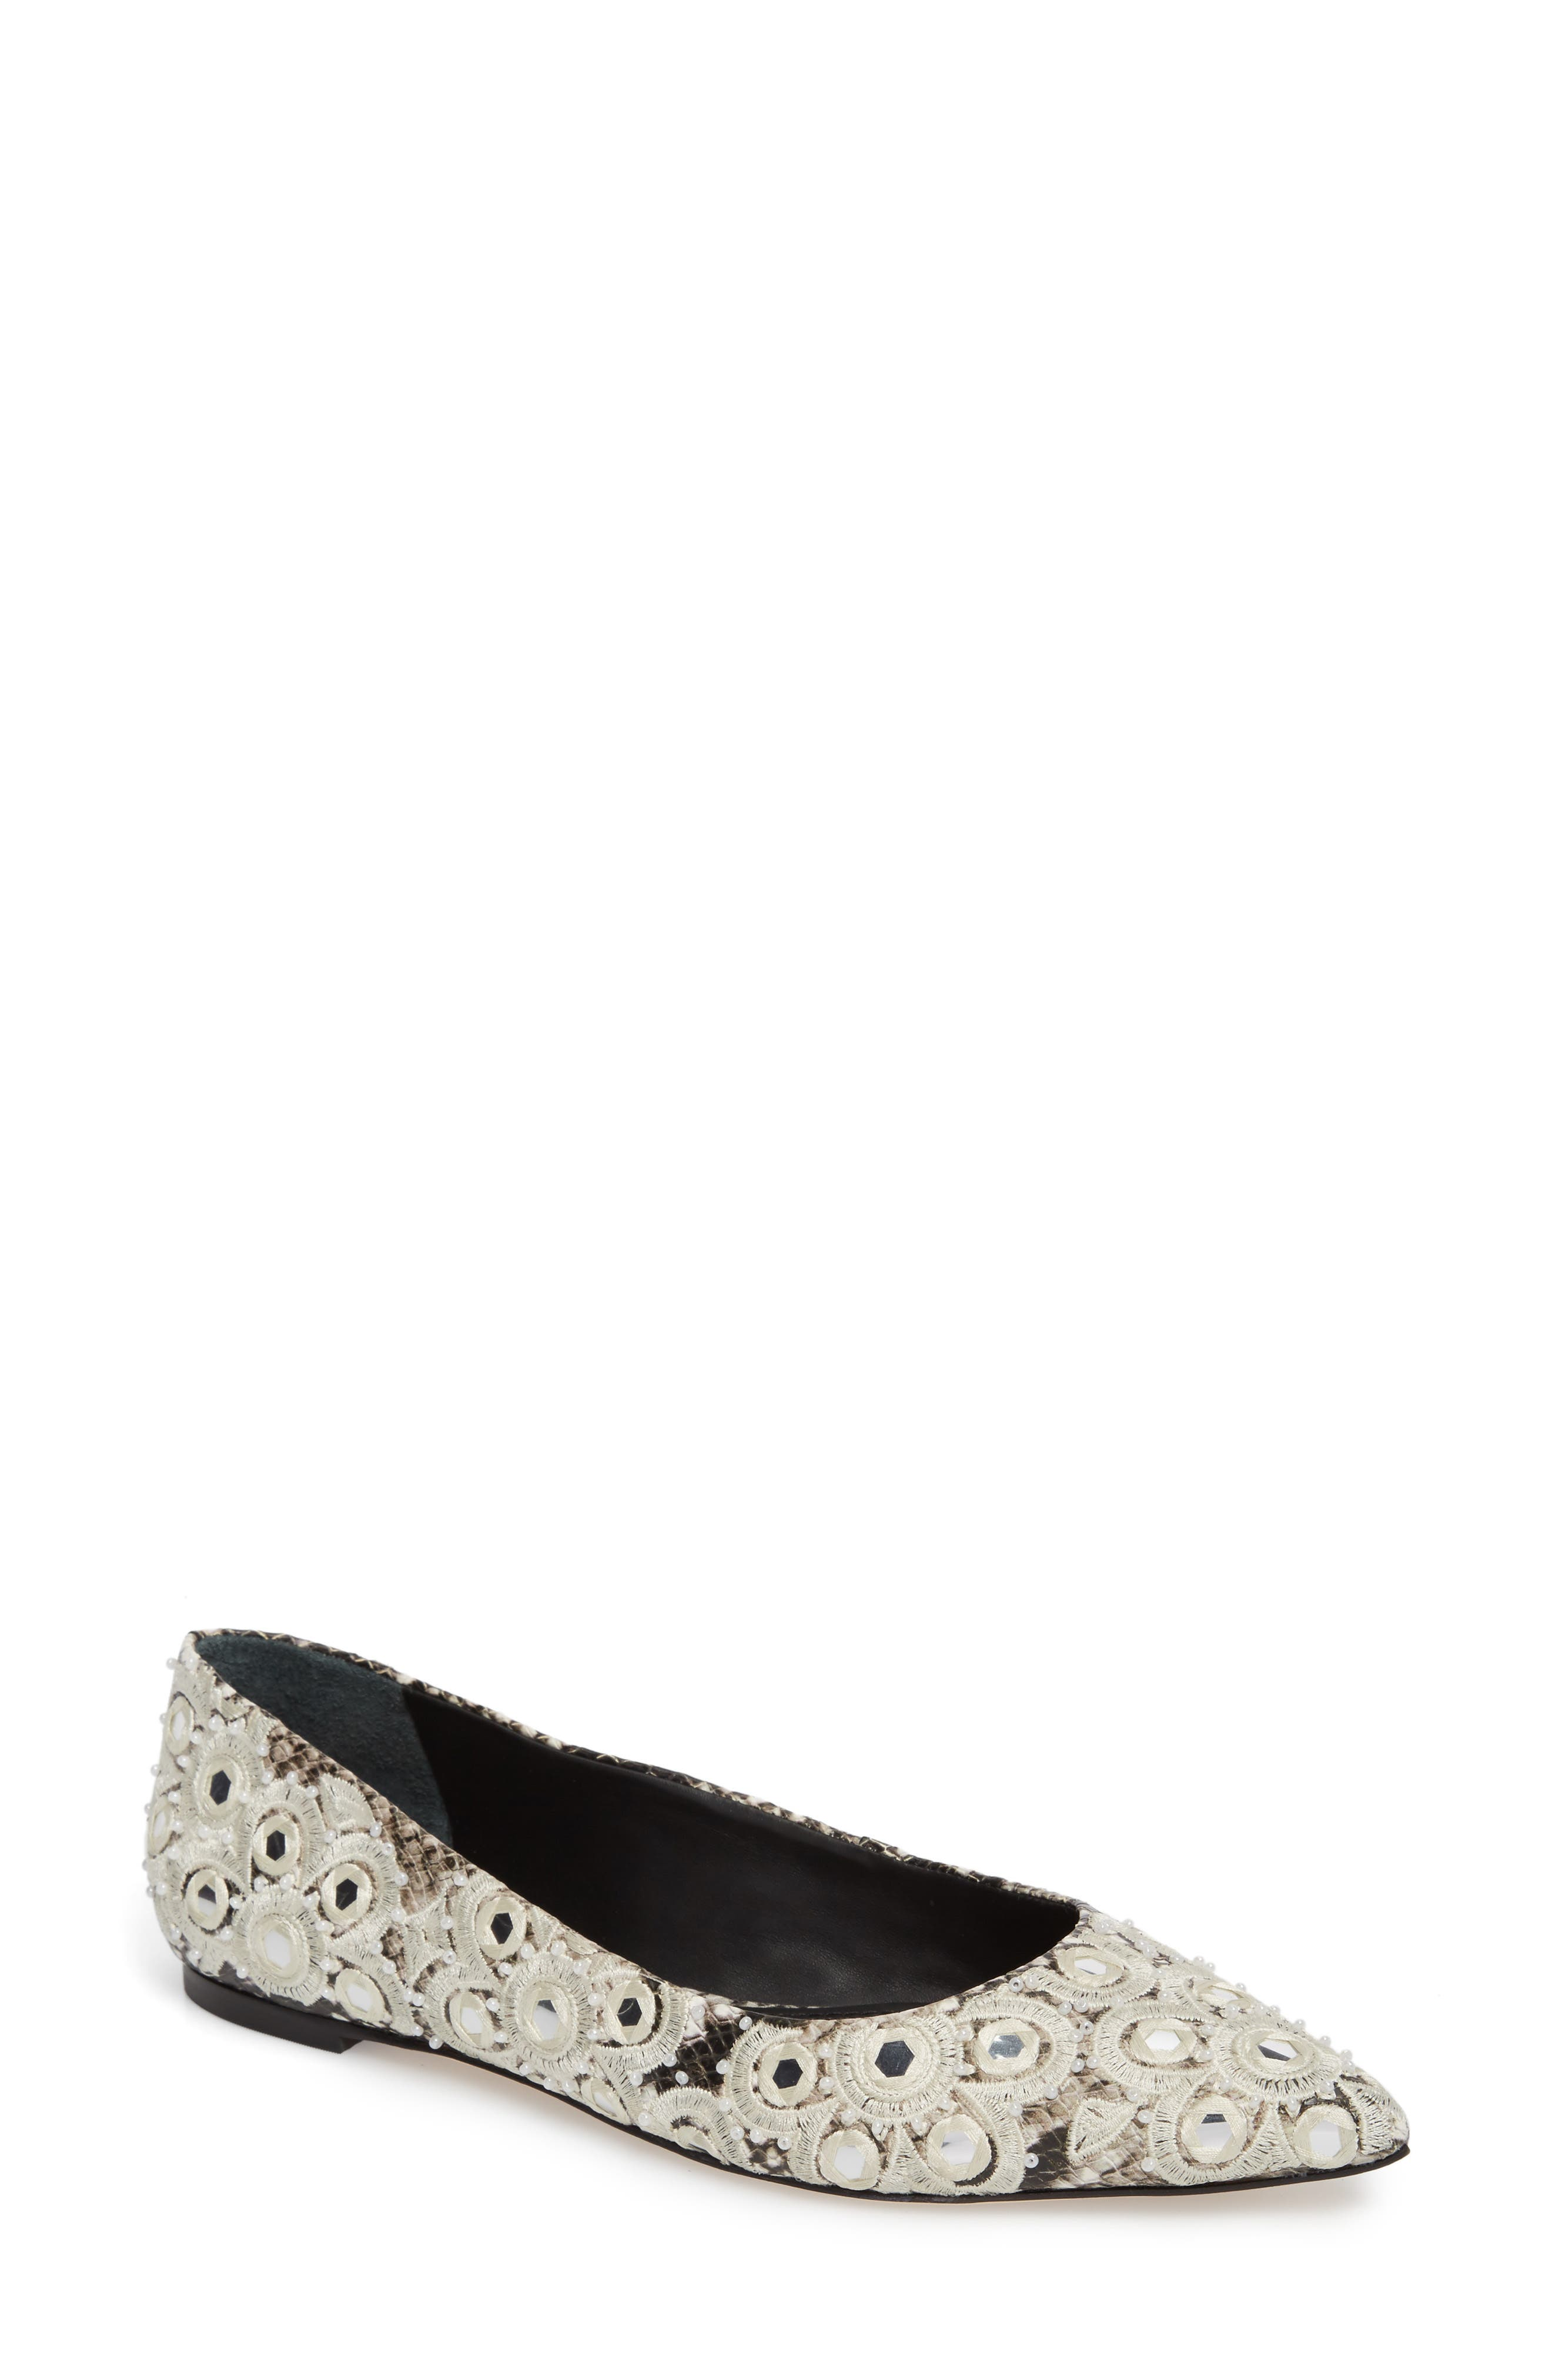 Alternate Image 1 Selected - Tory Burch Yasmin Embroidered Flat (Women)